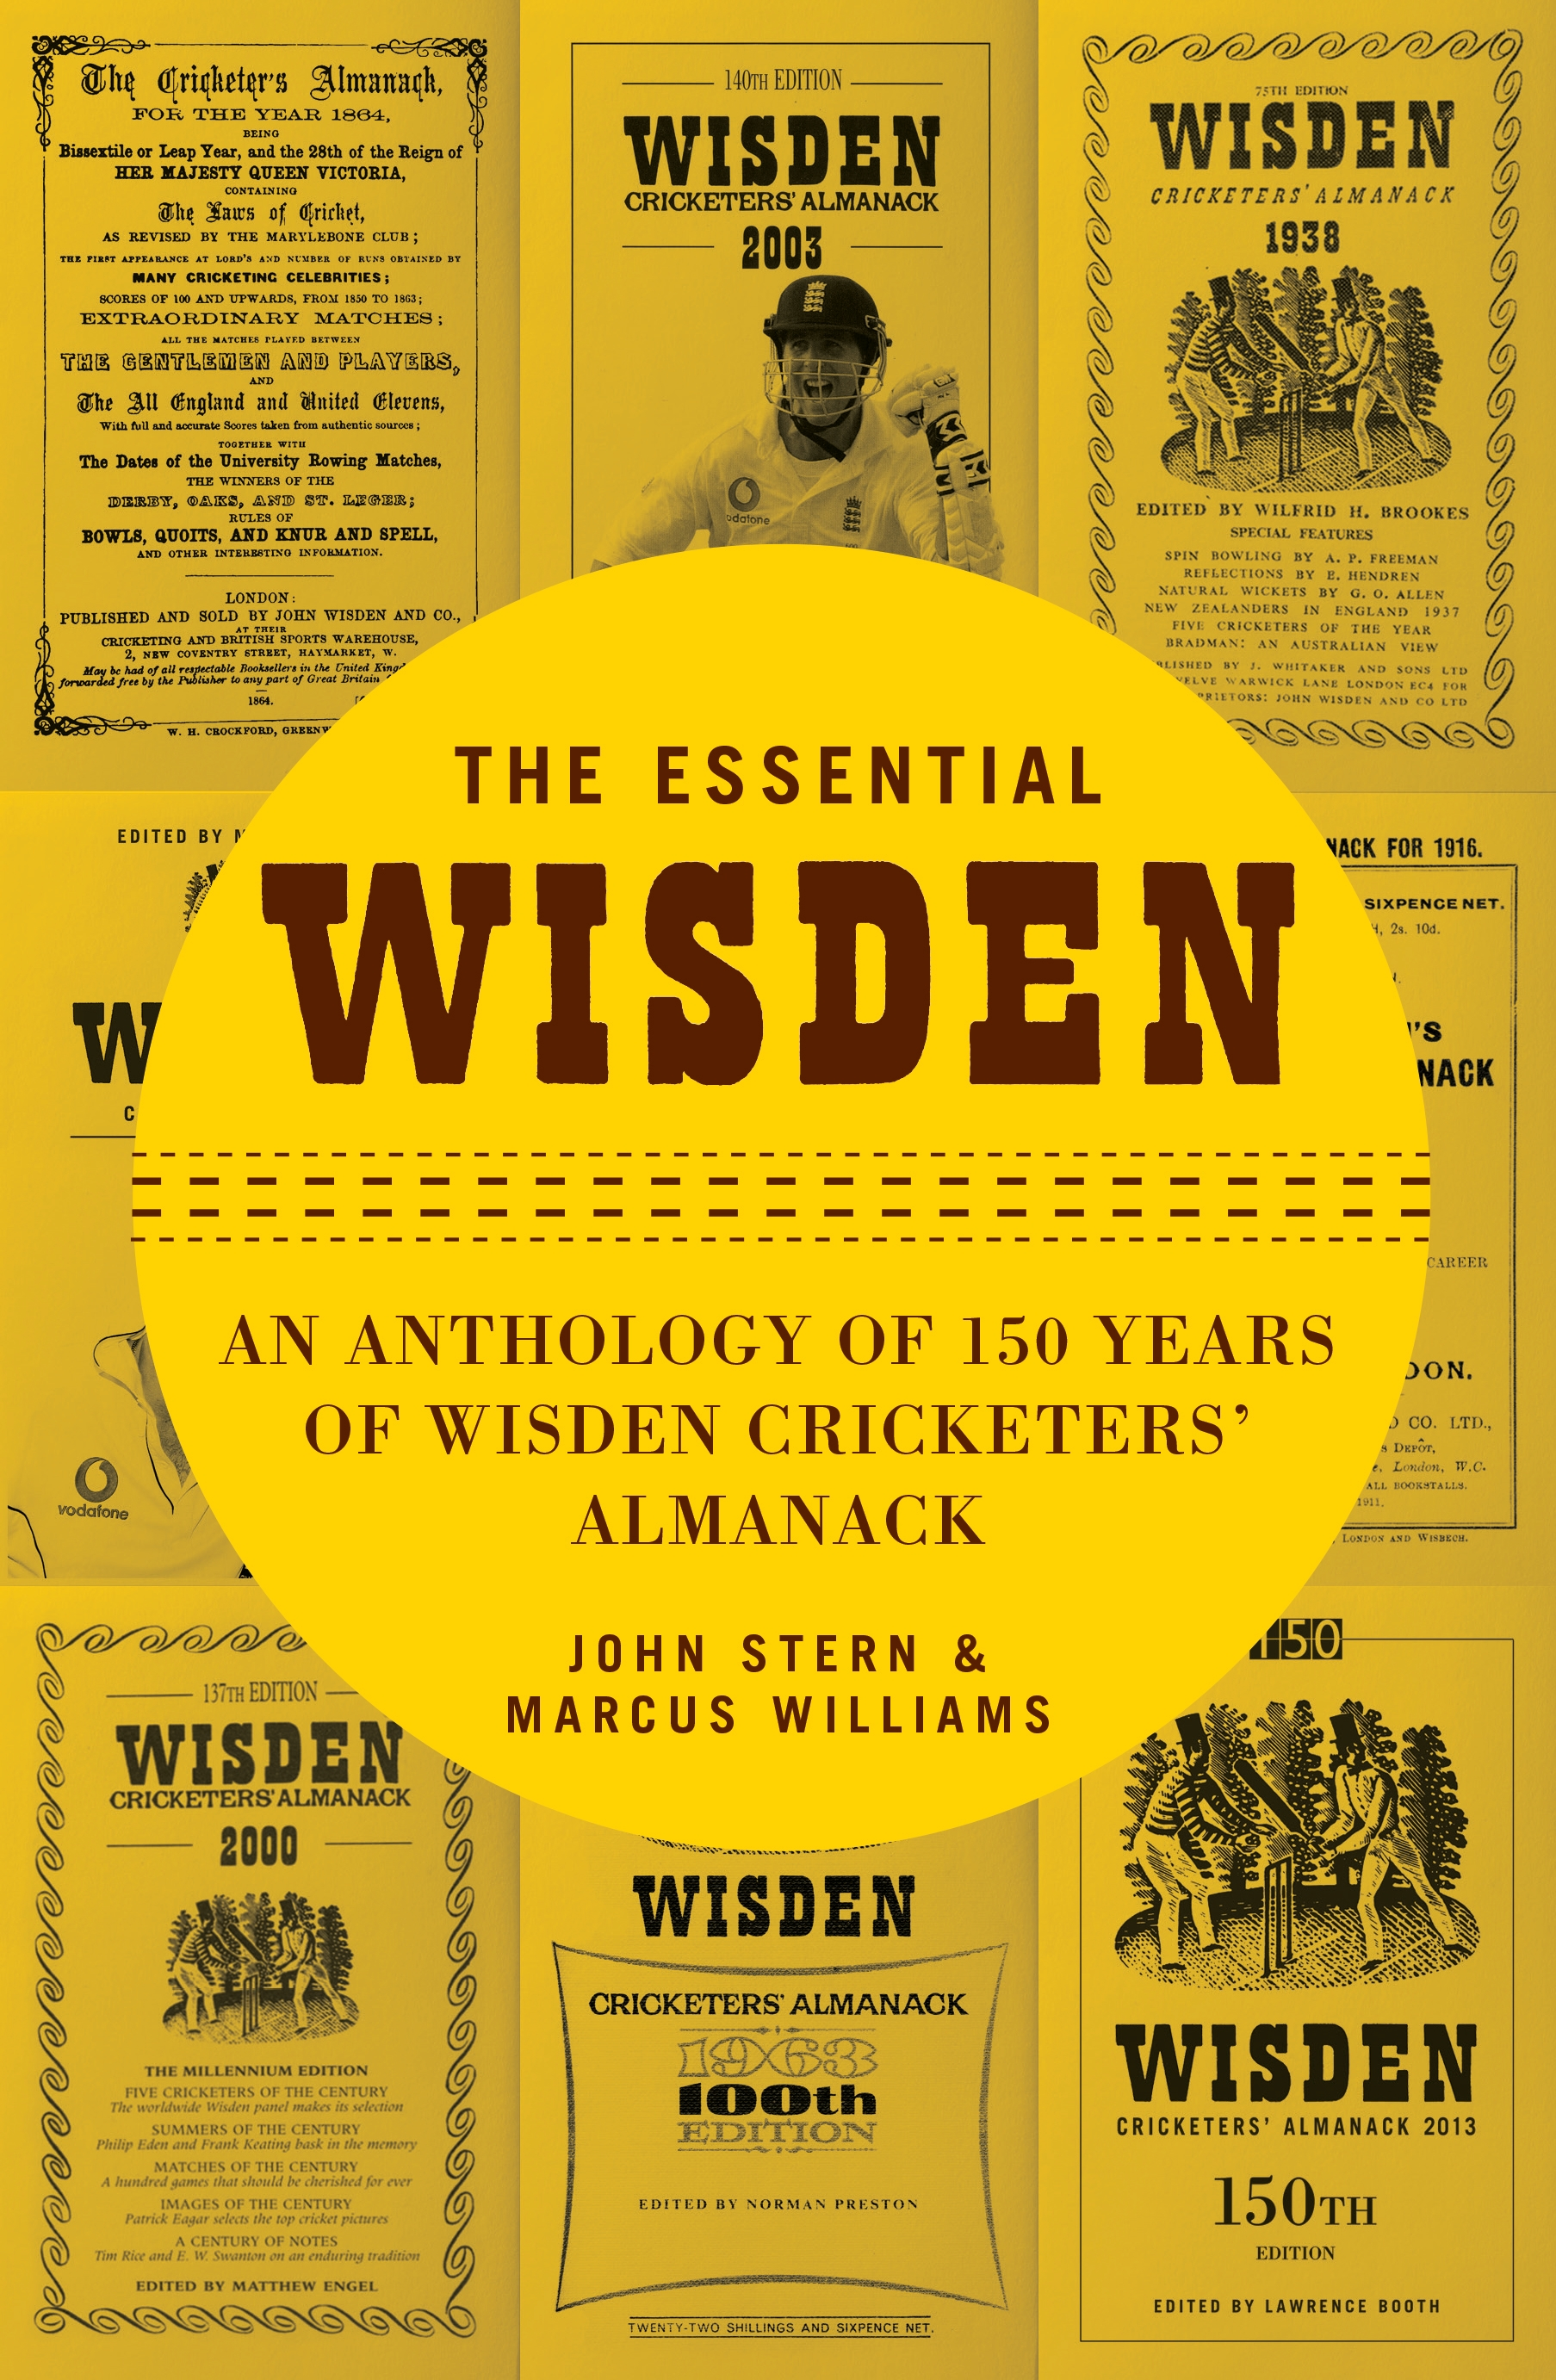 The Essential Wisden An Anthology of 150 Years of Wisden Cricketers' Almanack